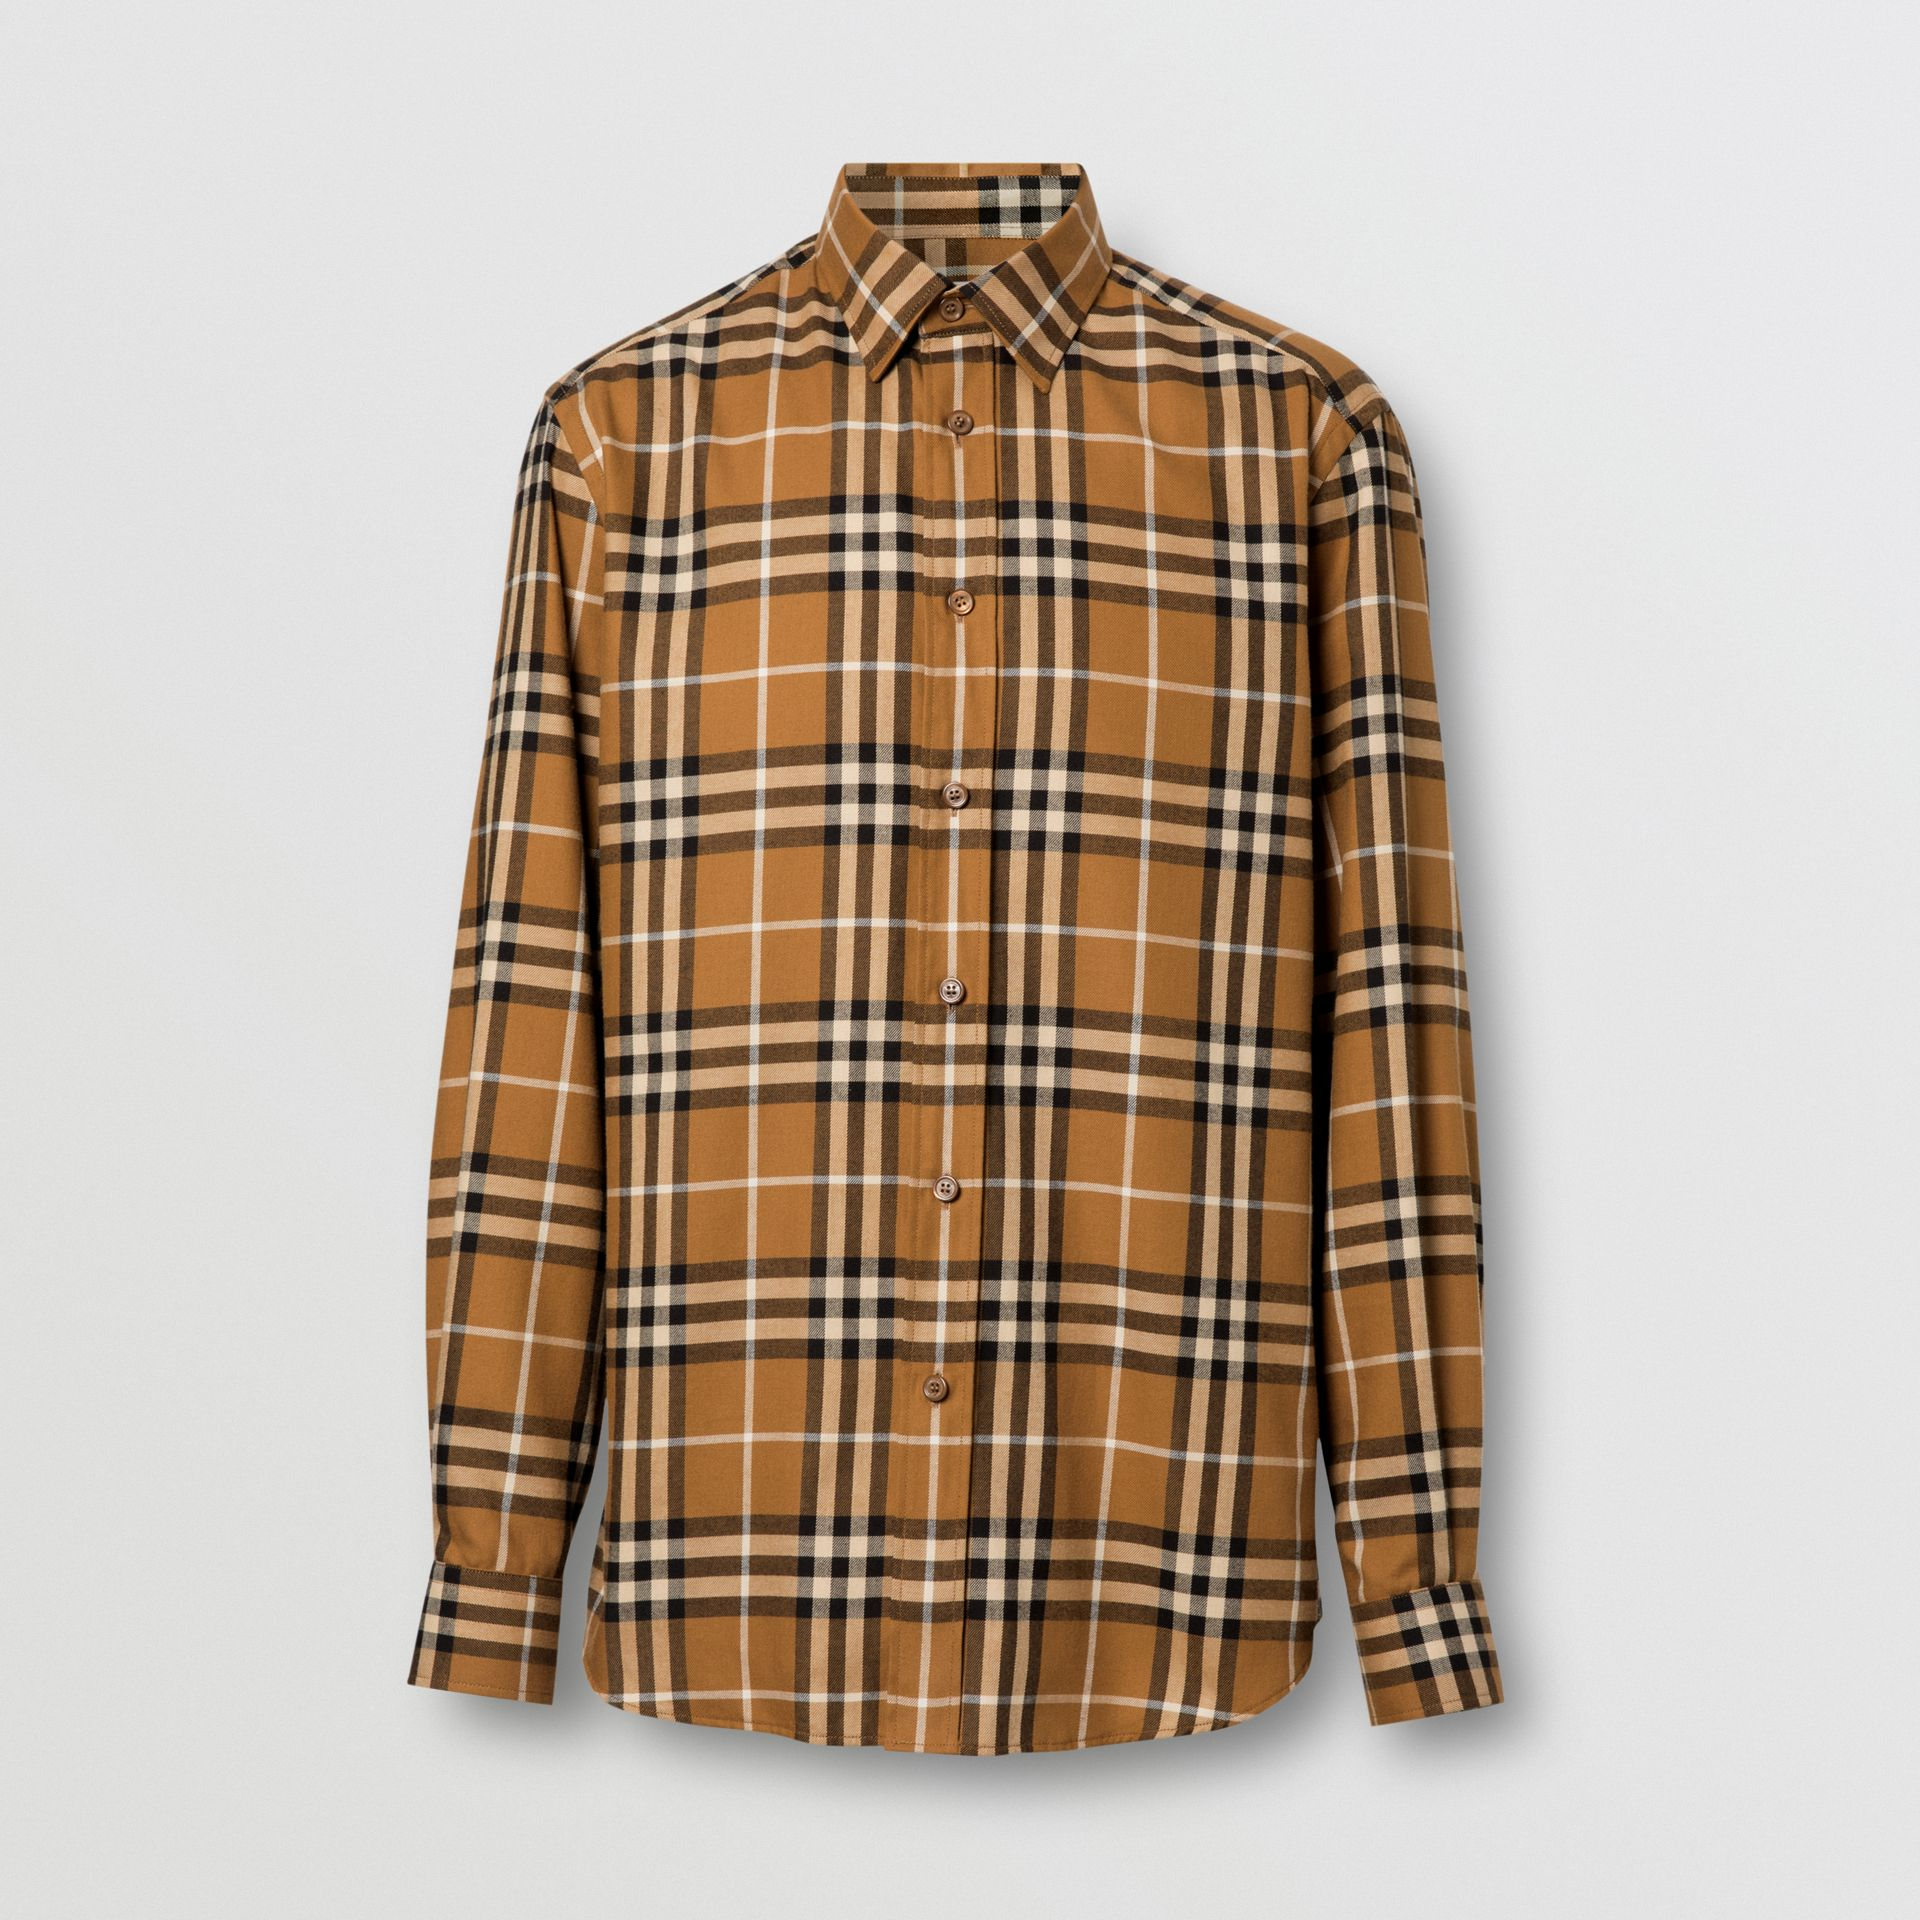 Vintage Check Cotton Flannel Shirt in Warm Walnut - Men | Burberry United Kingdom - gallery image 3